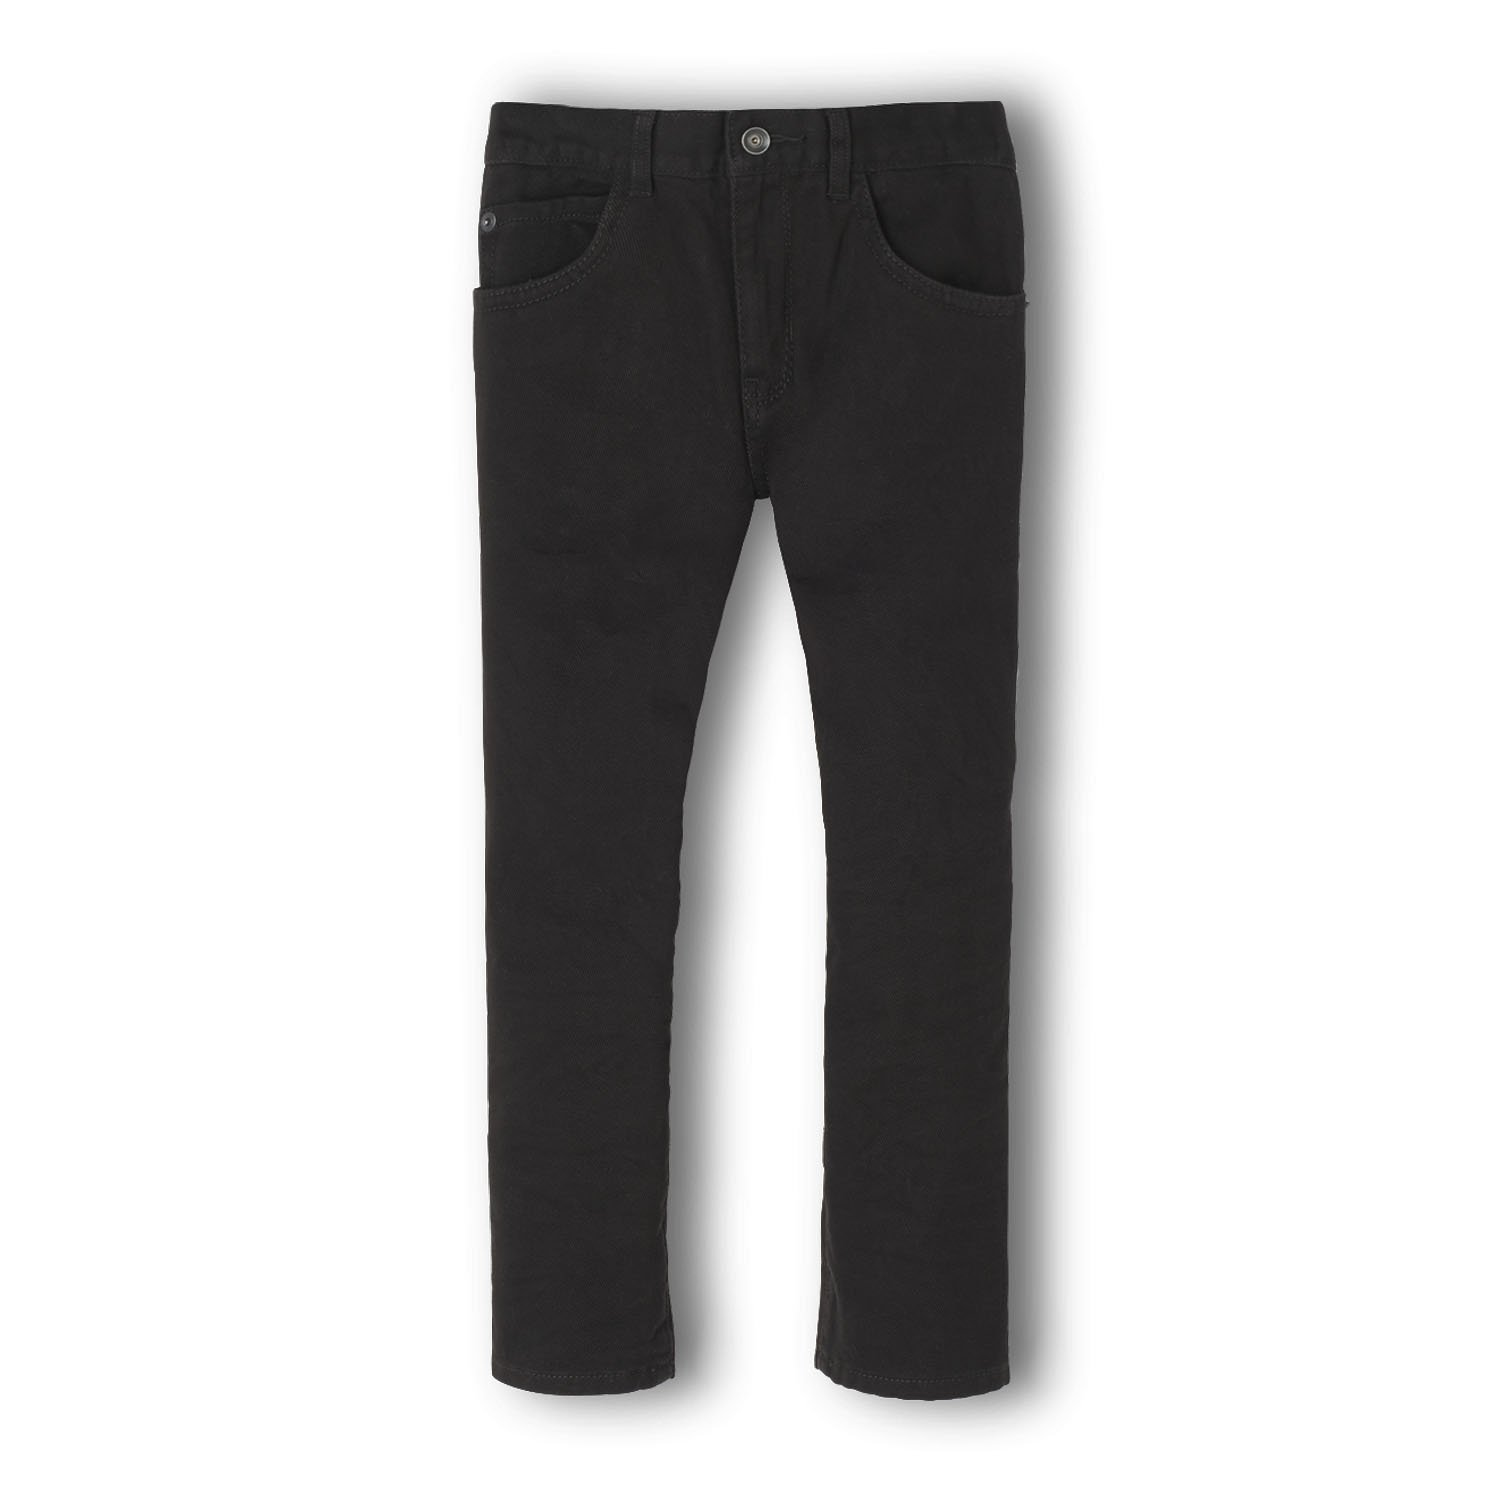 The Children's Place Boys' Basic Skinny Jeans